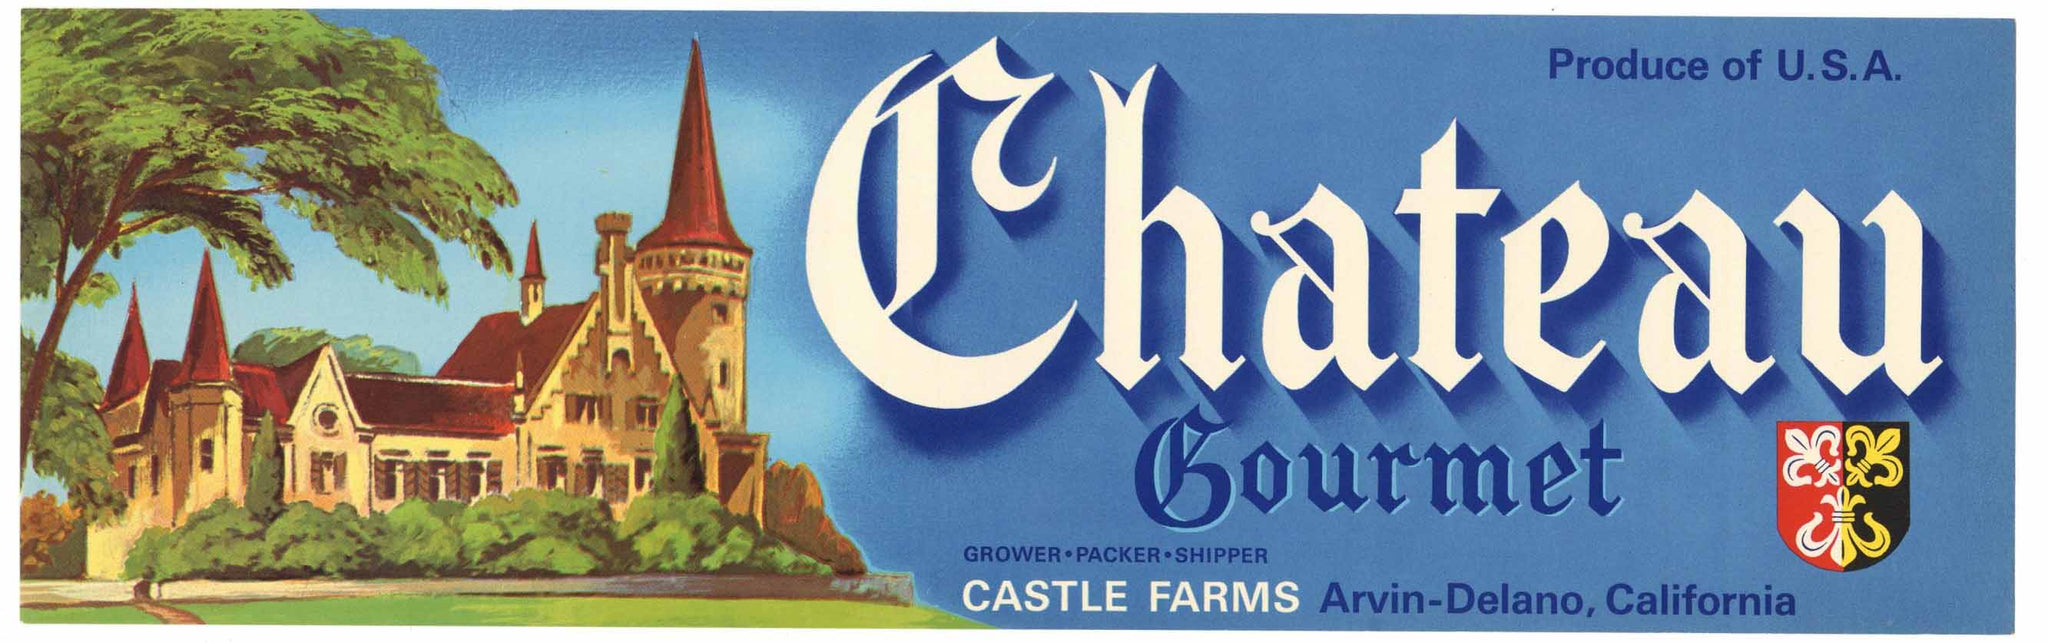 Chateau Brand Vintage Delano Grape Crate Label